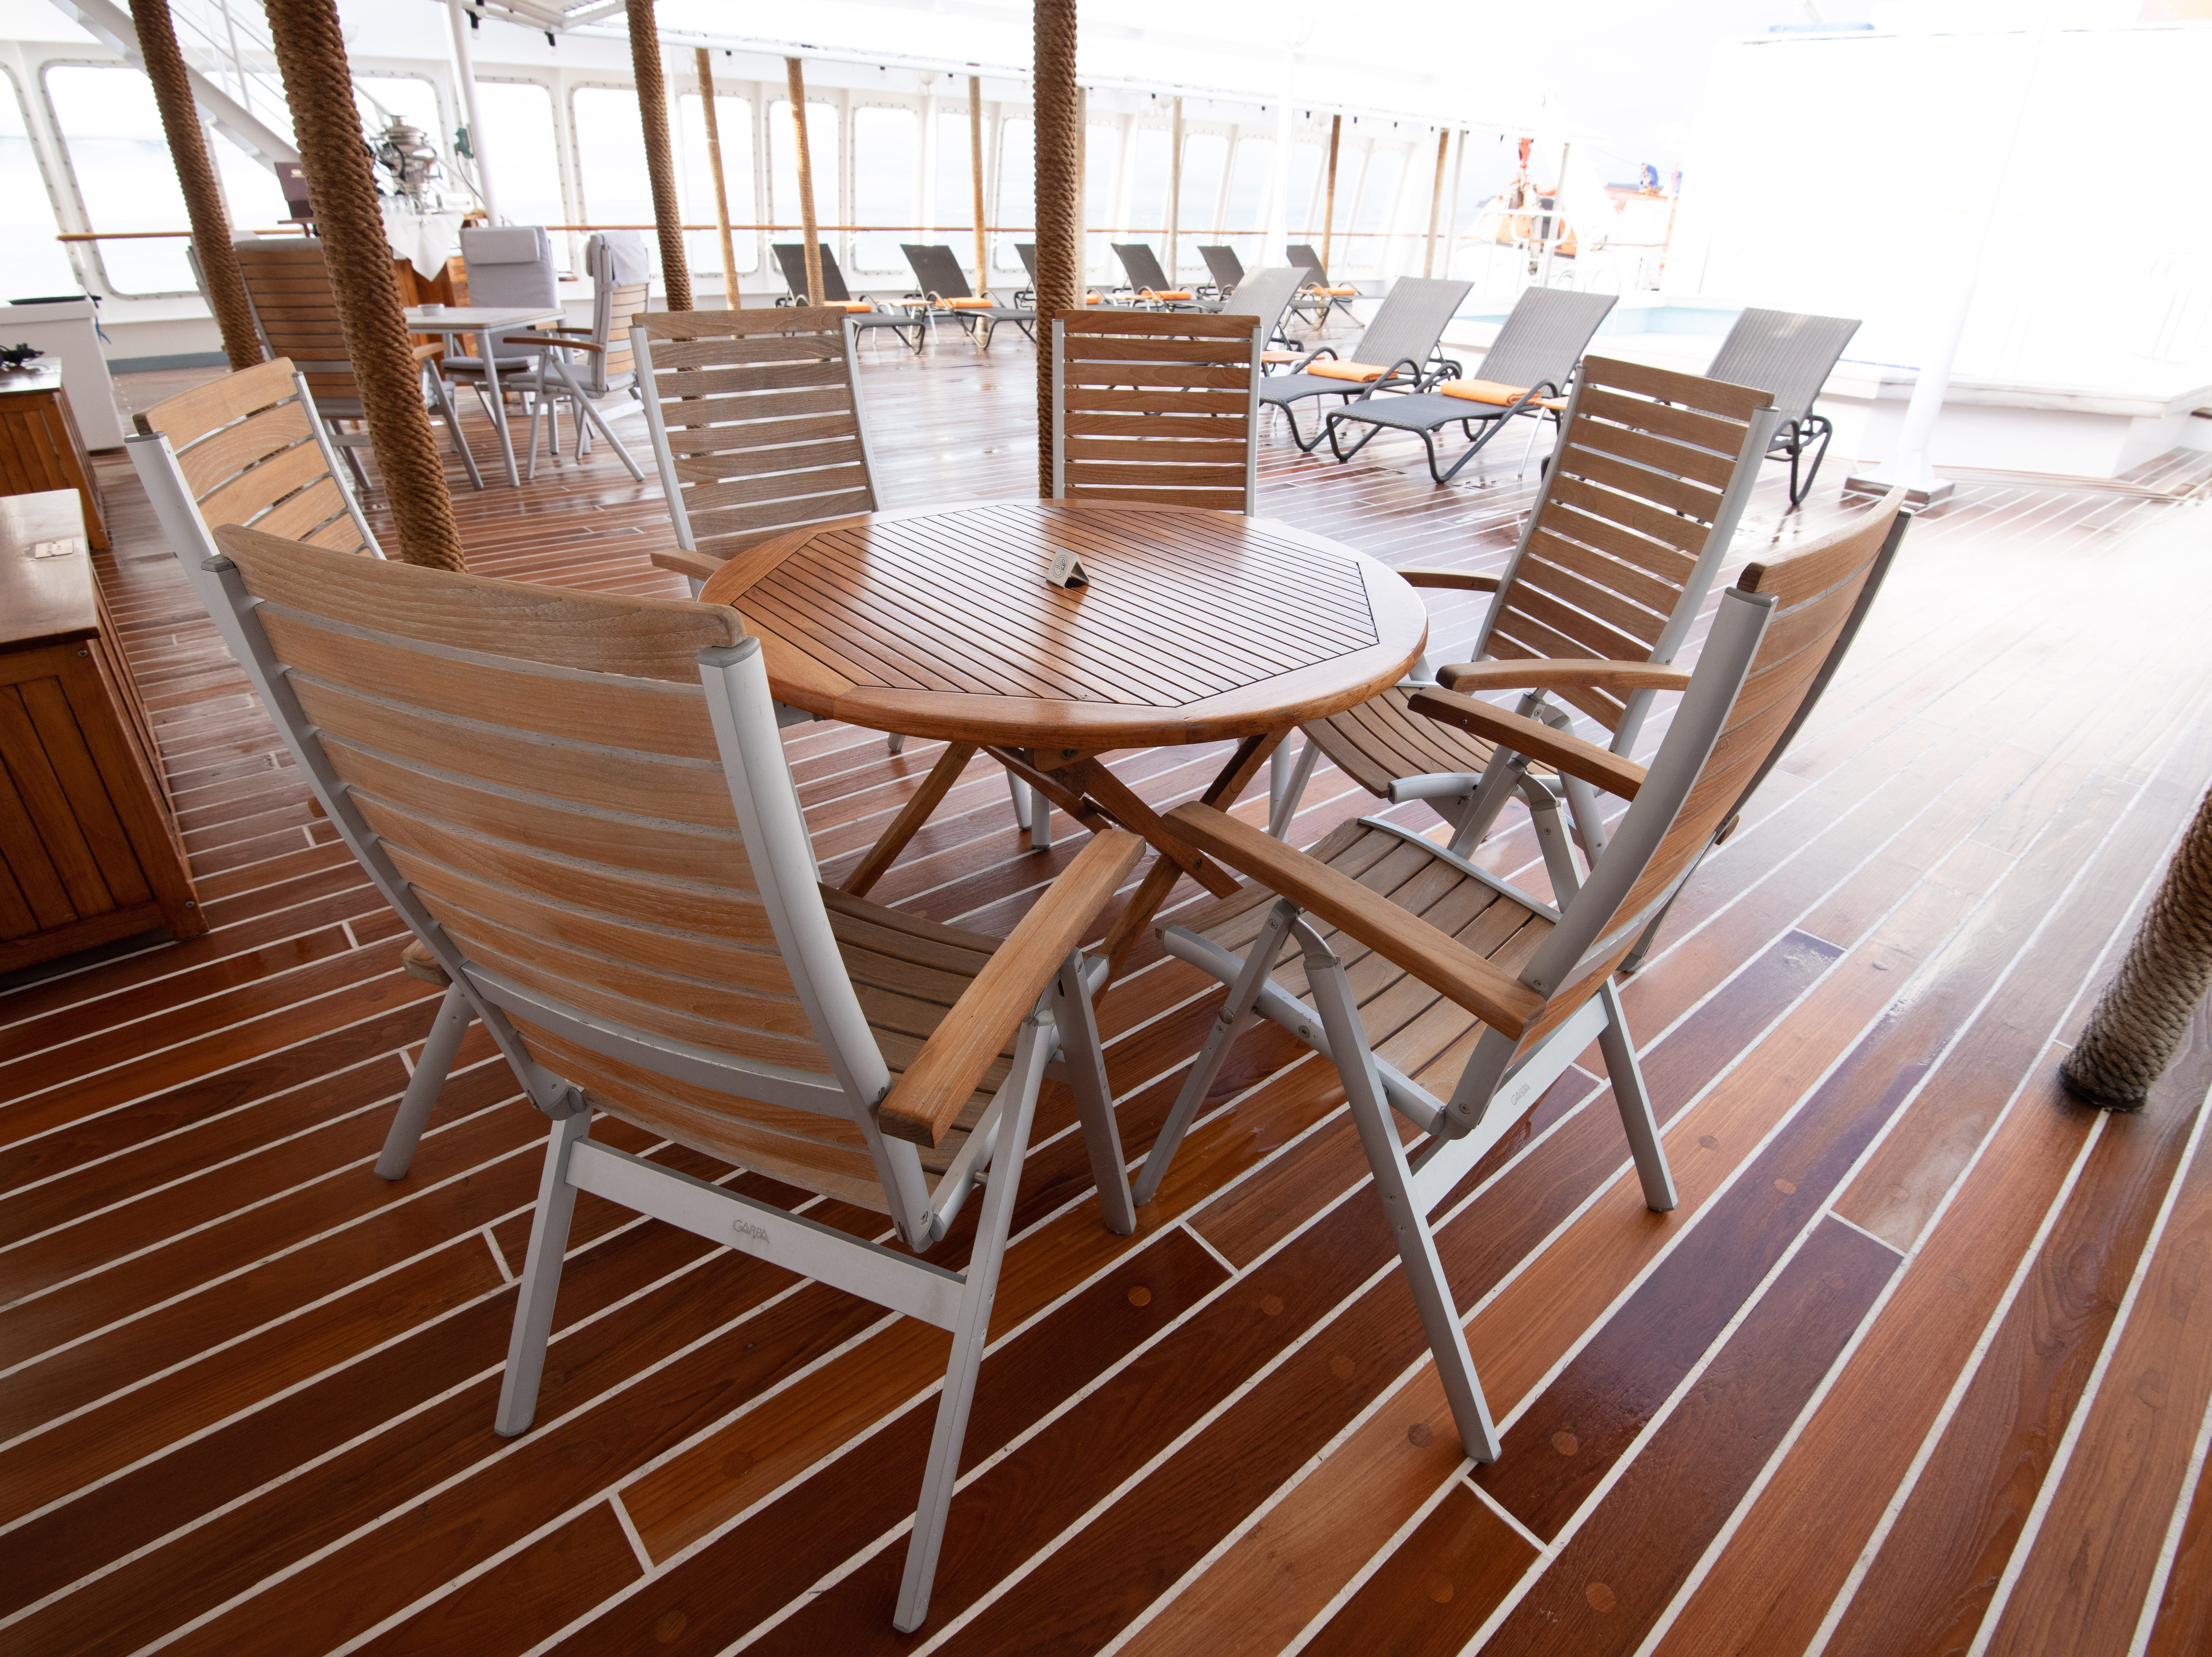 Bremen's Sun Deck also has a small seating area with chairs and tables.